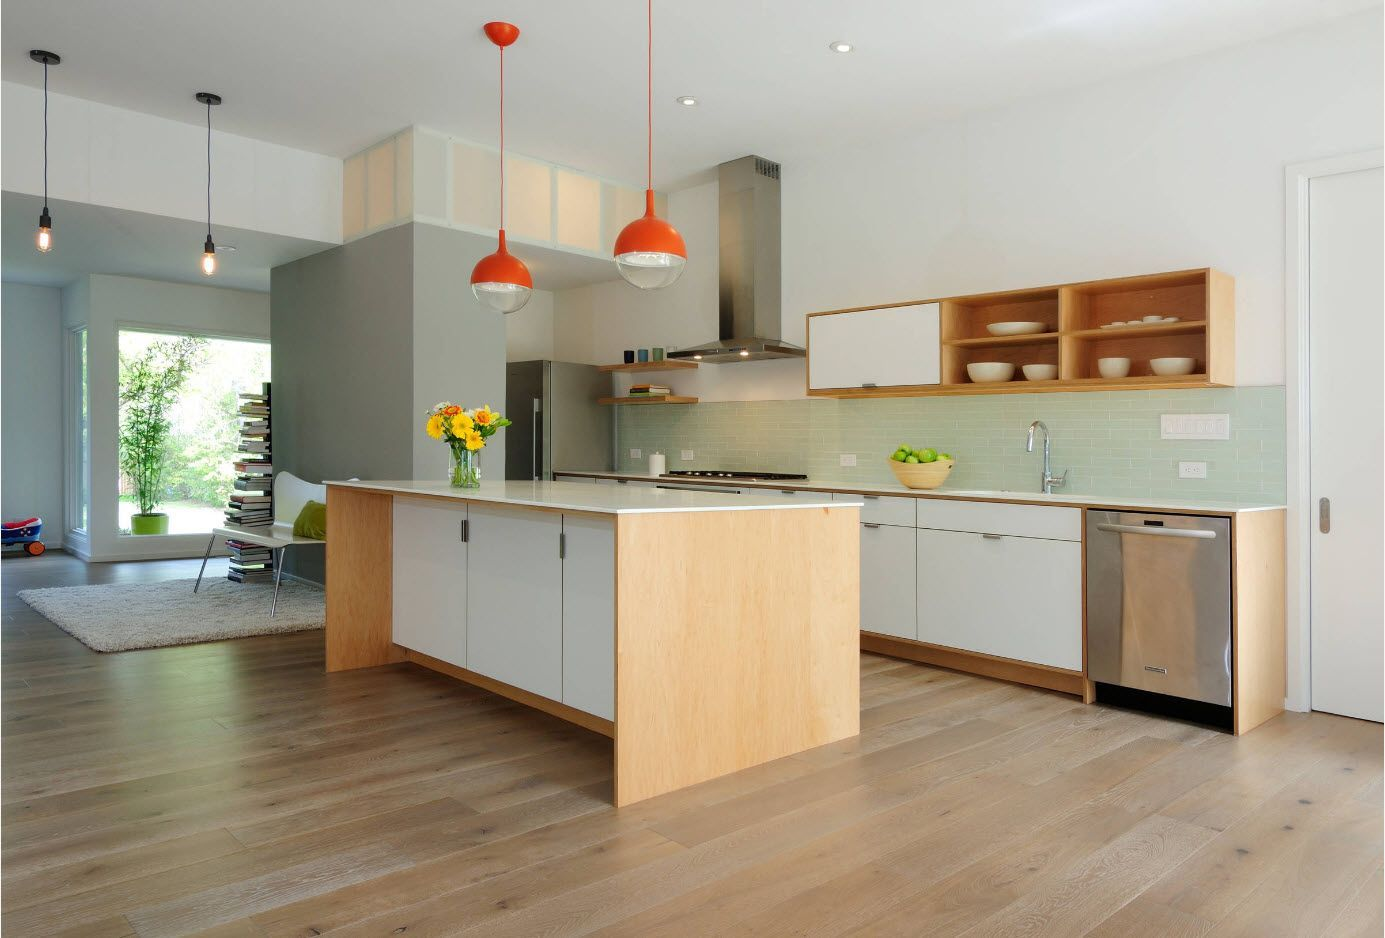 Spcious kitchen and successful design concept with orange lampshades